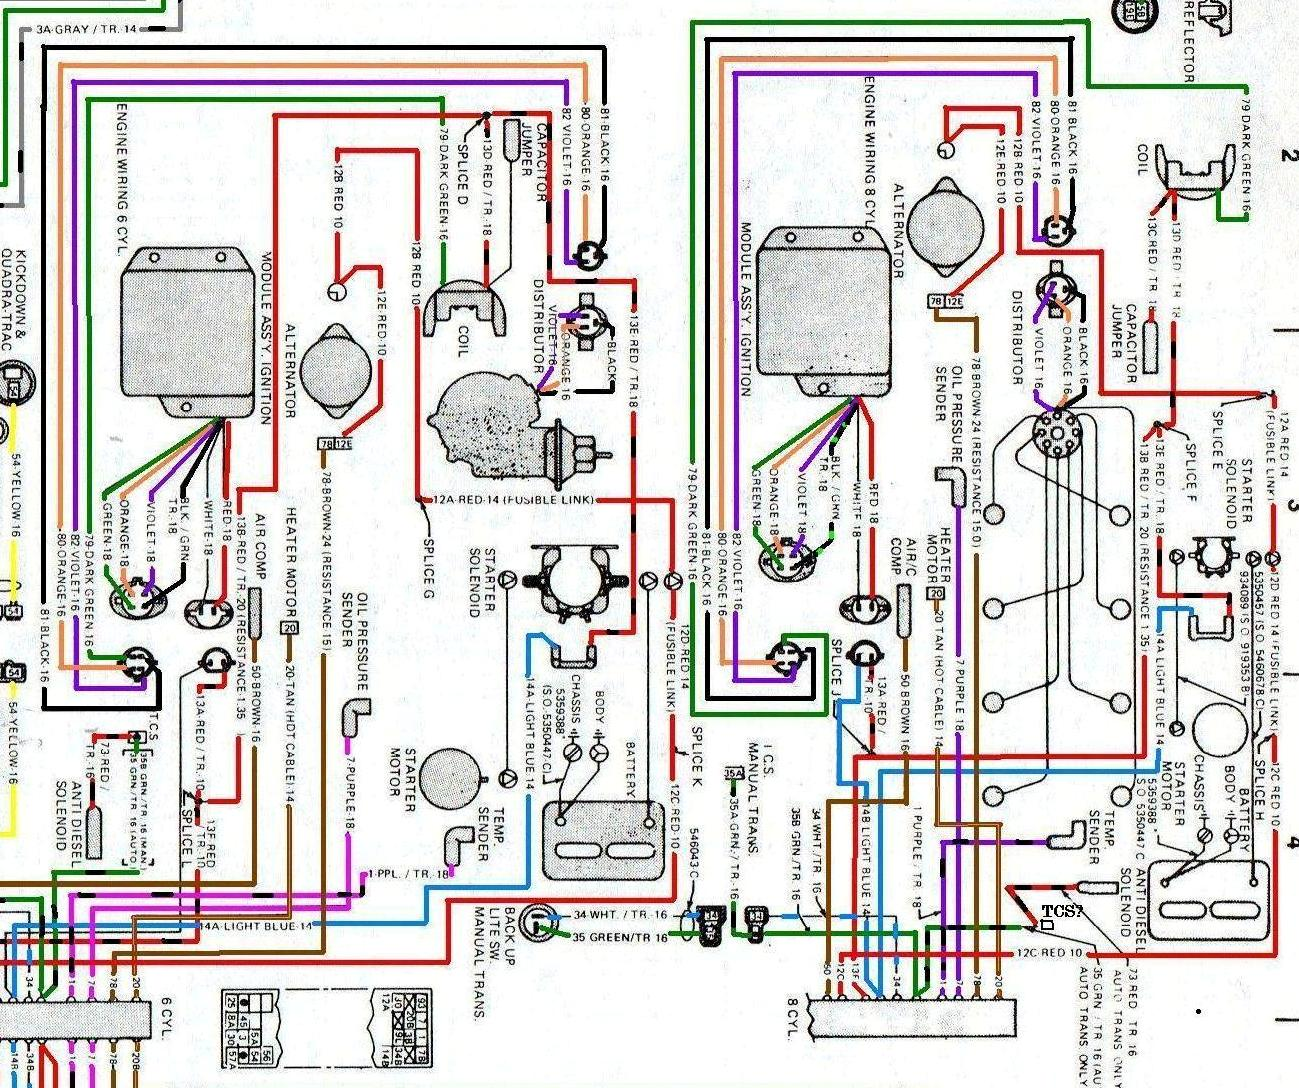 79 cj7 wiring diagram for tail lights wiring diagram shrutiradio  original?resize\=665%2C557\&ssl\=1 79 cj7 wiring